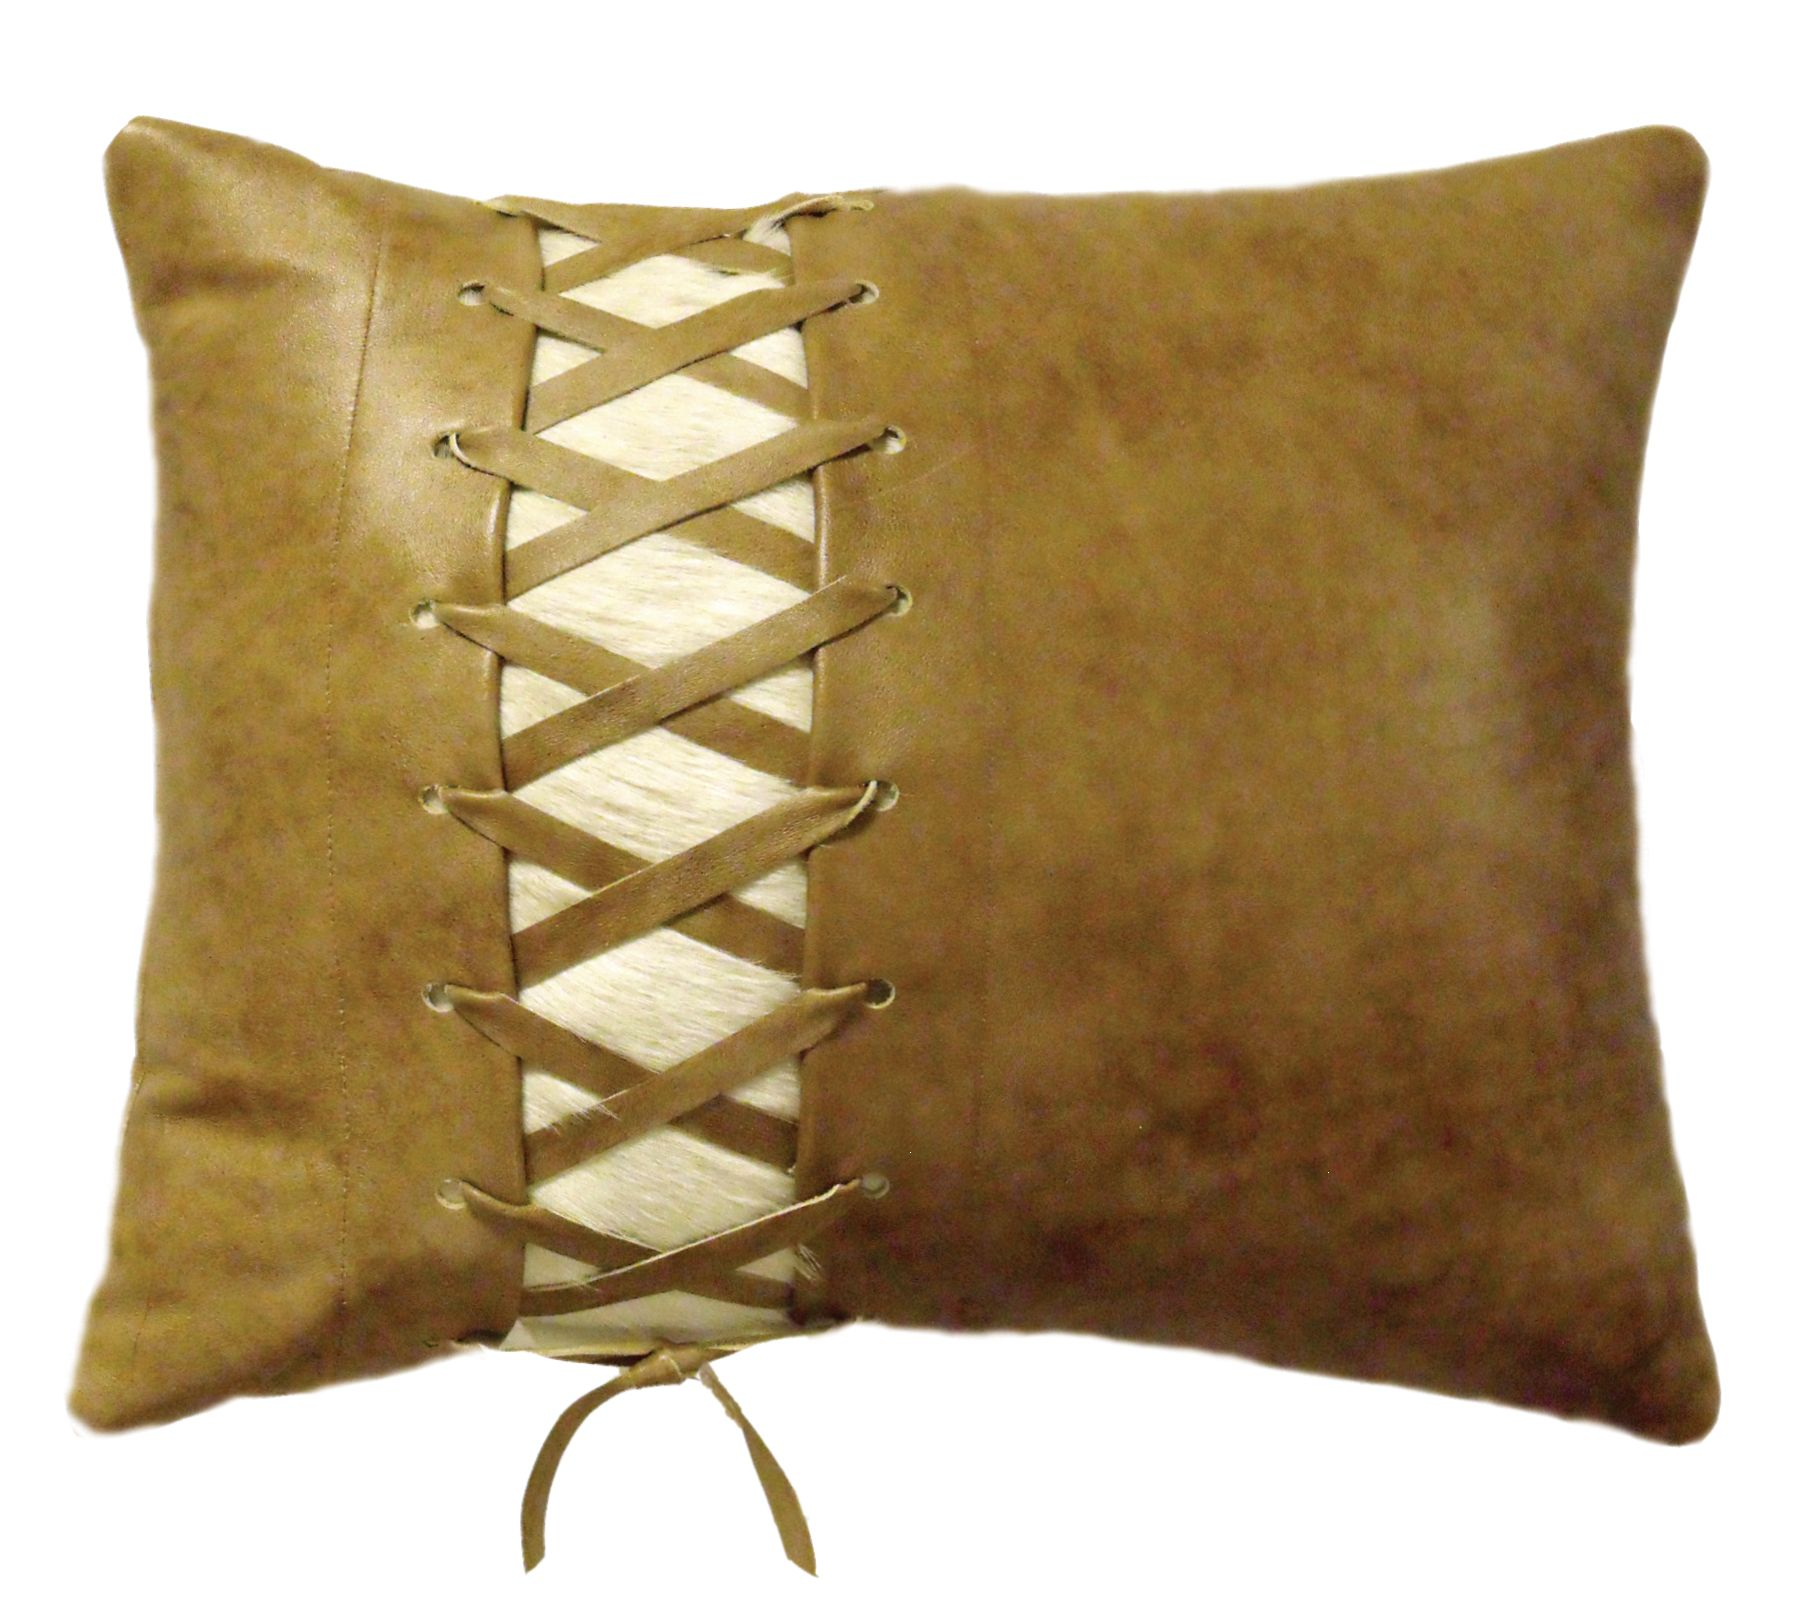 How To Make A Leather Throw Pillow : Leather Lace up pillow with hair on hide Decorative Leather Pillows?